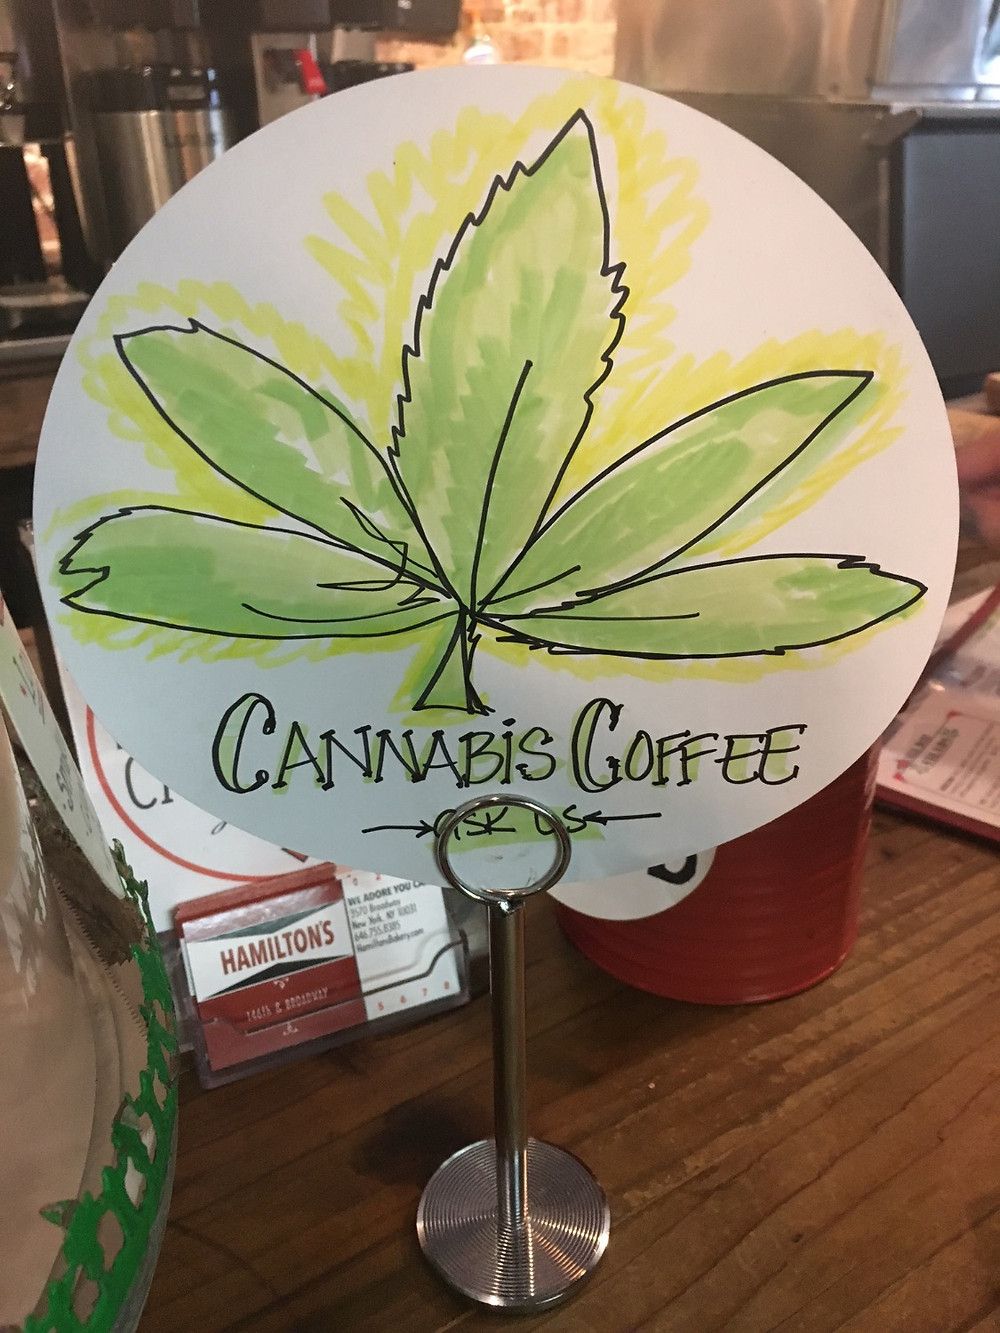 Cannabis coffee at Hamilton's in Harlem